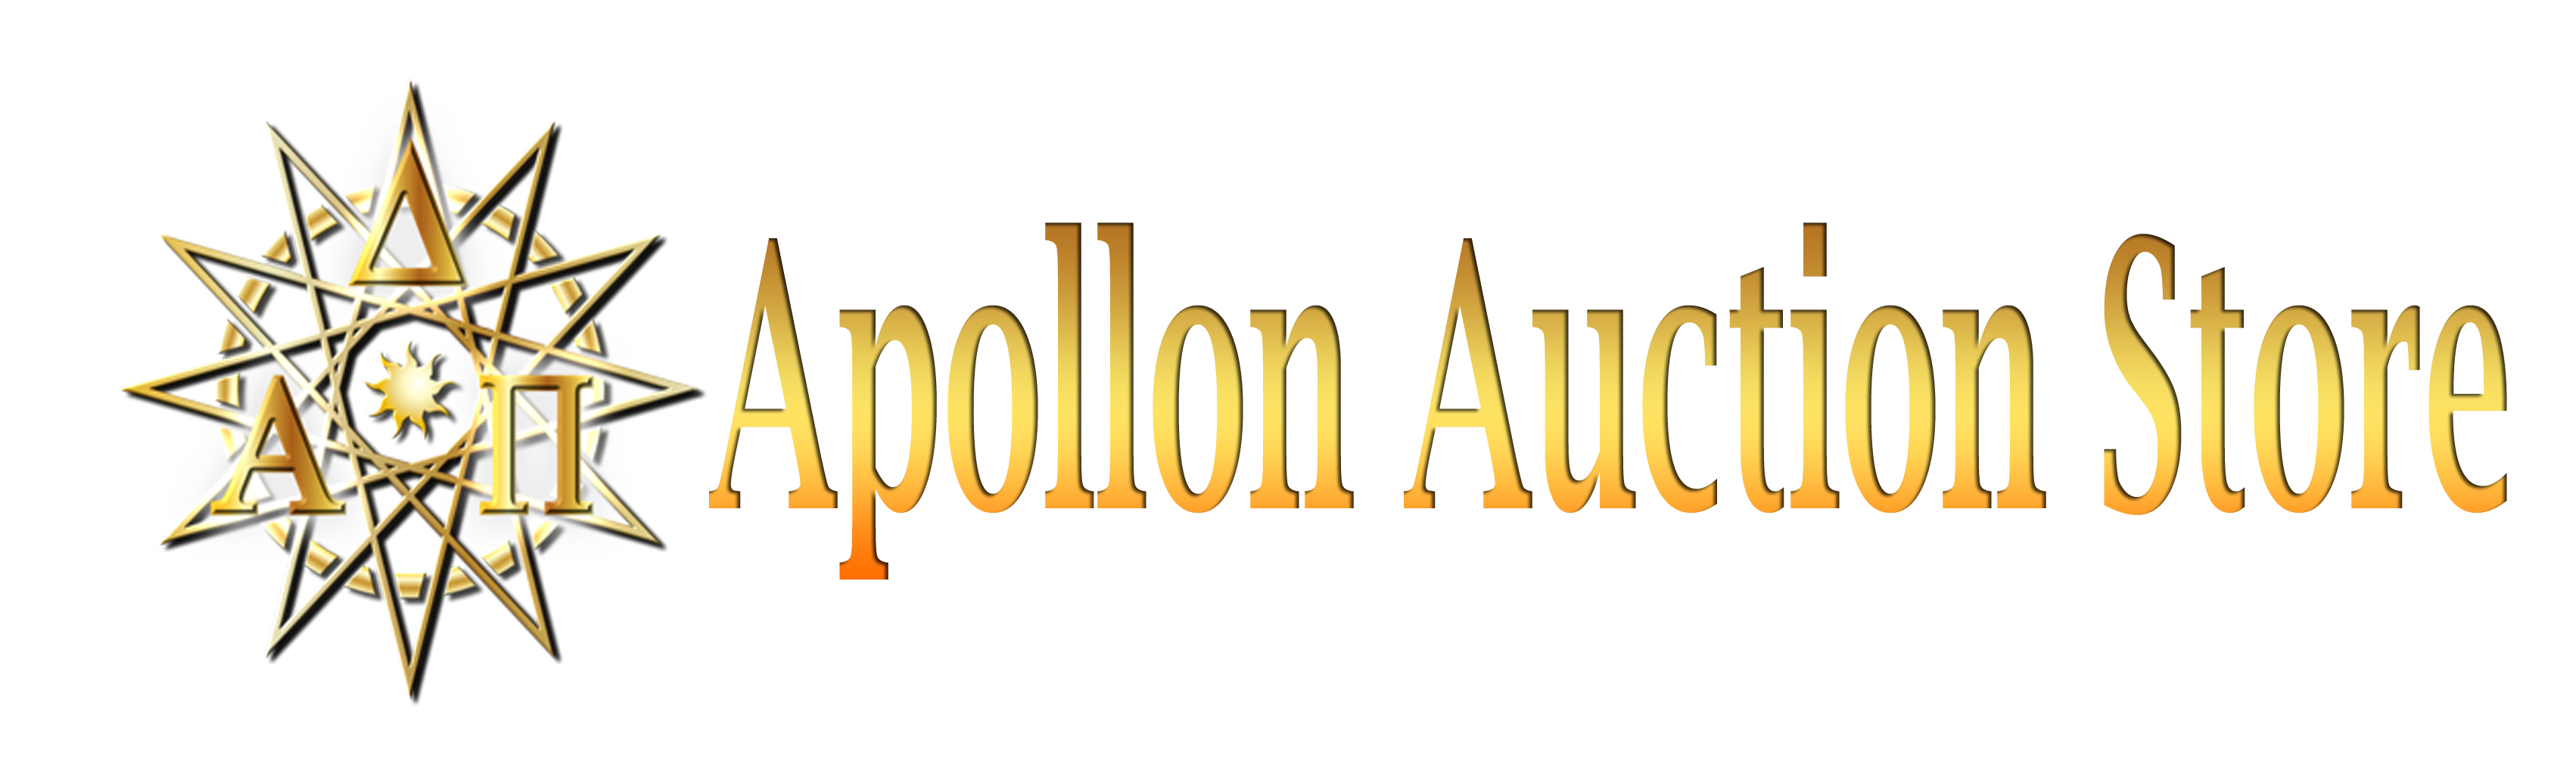 apollonauction-store.com